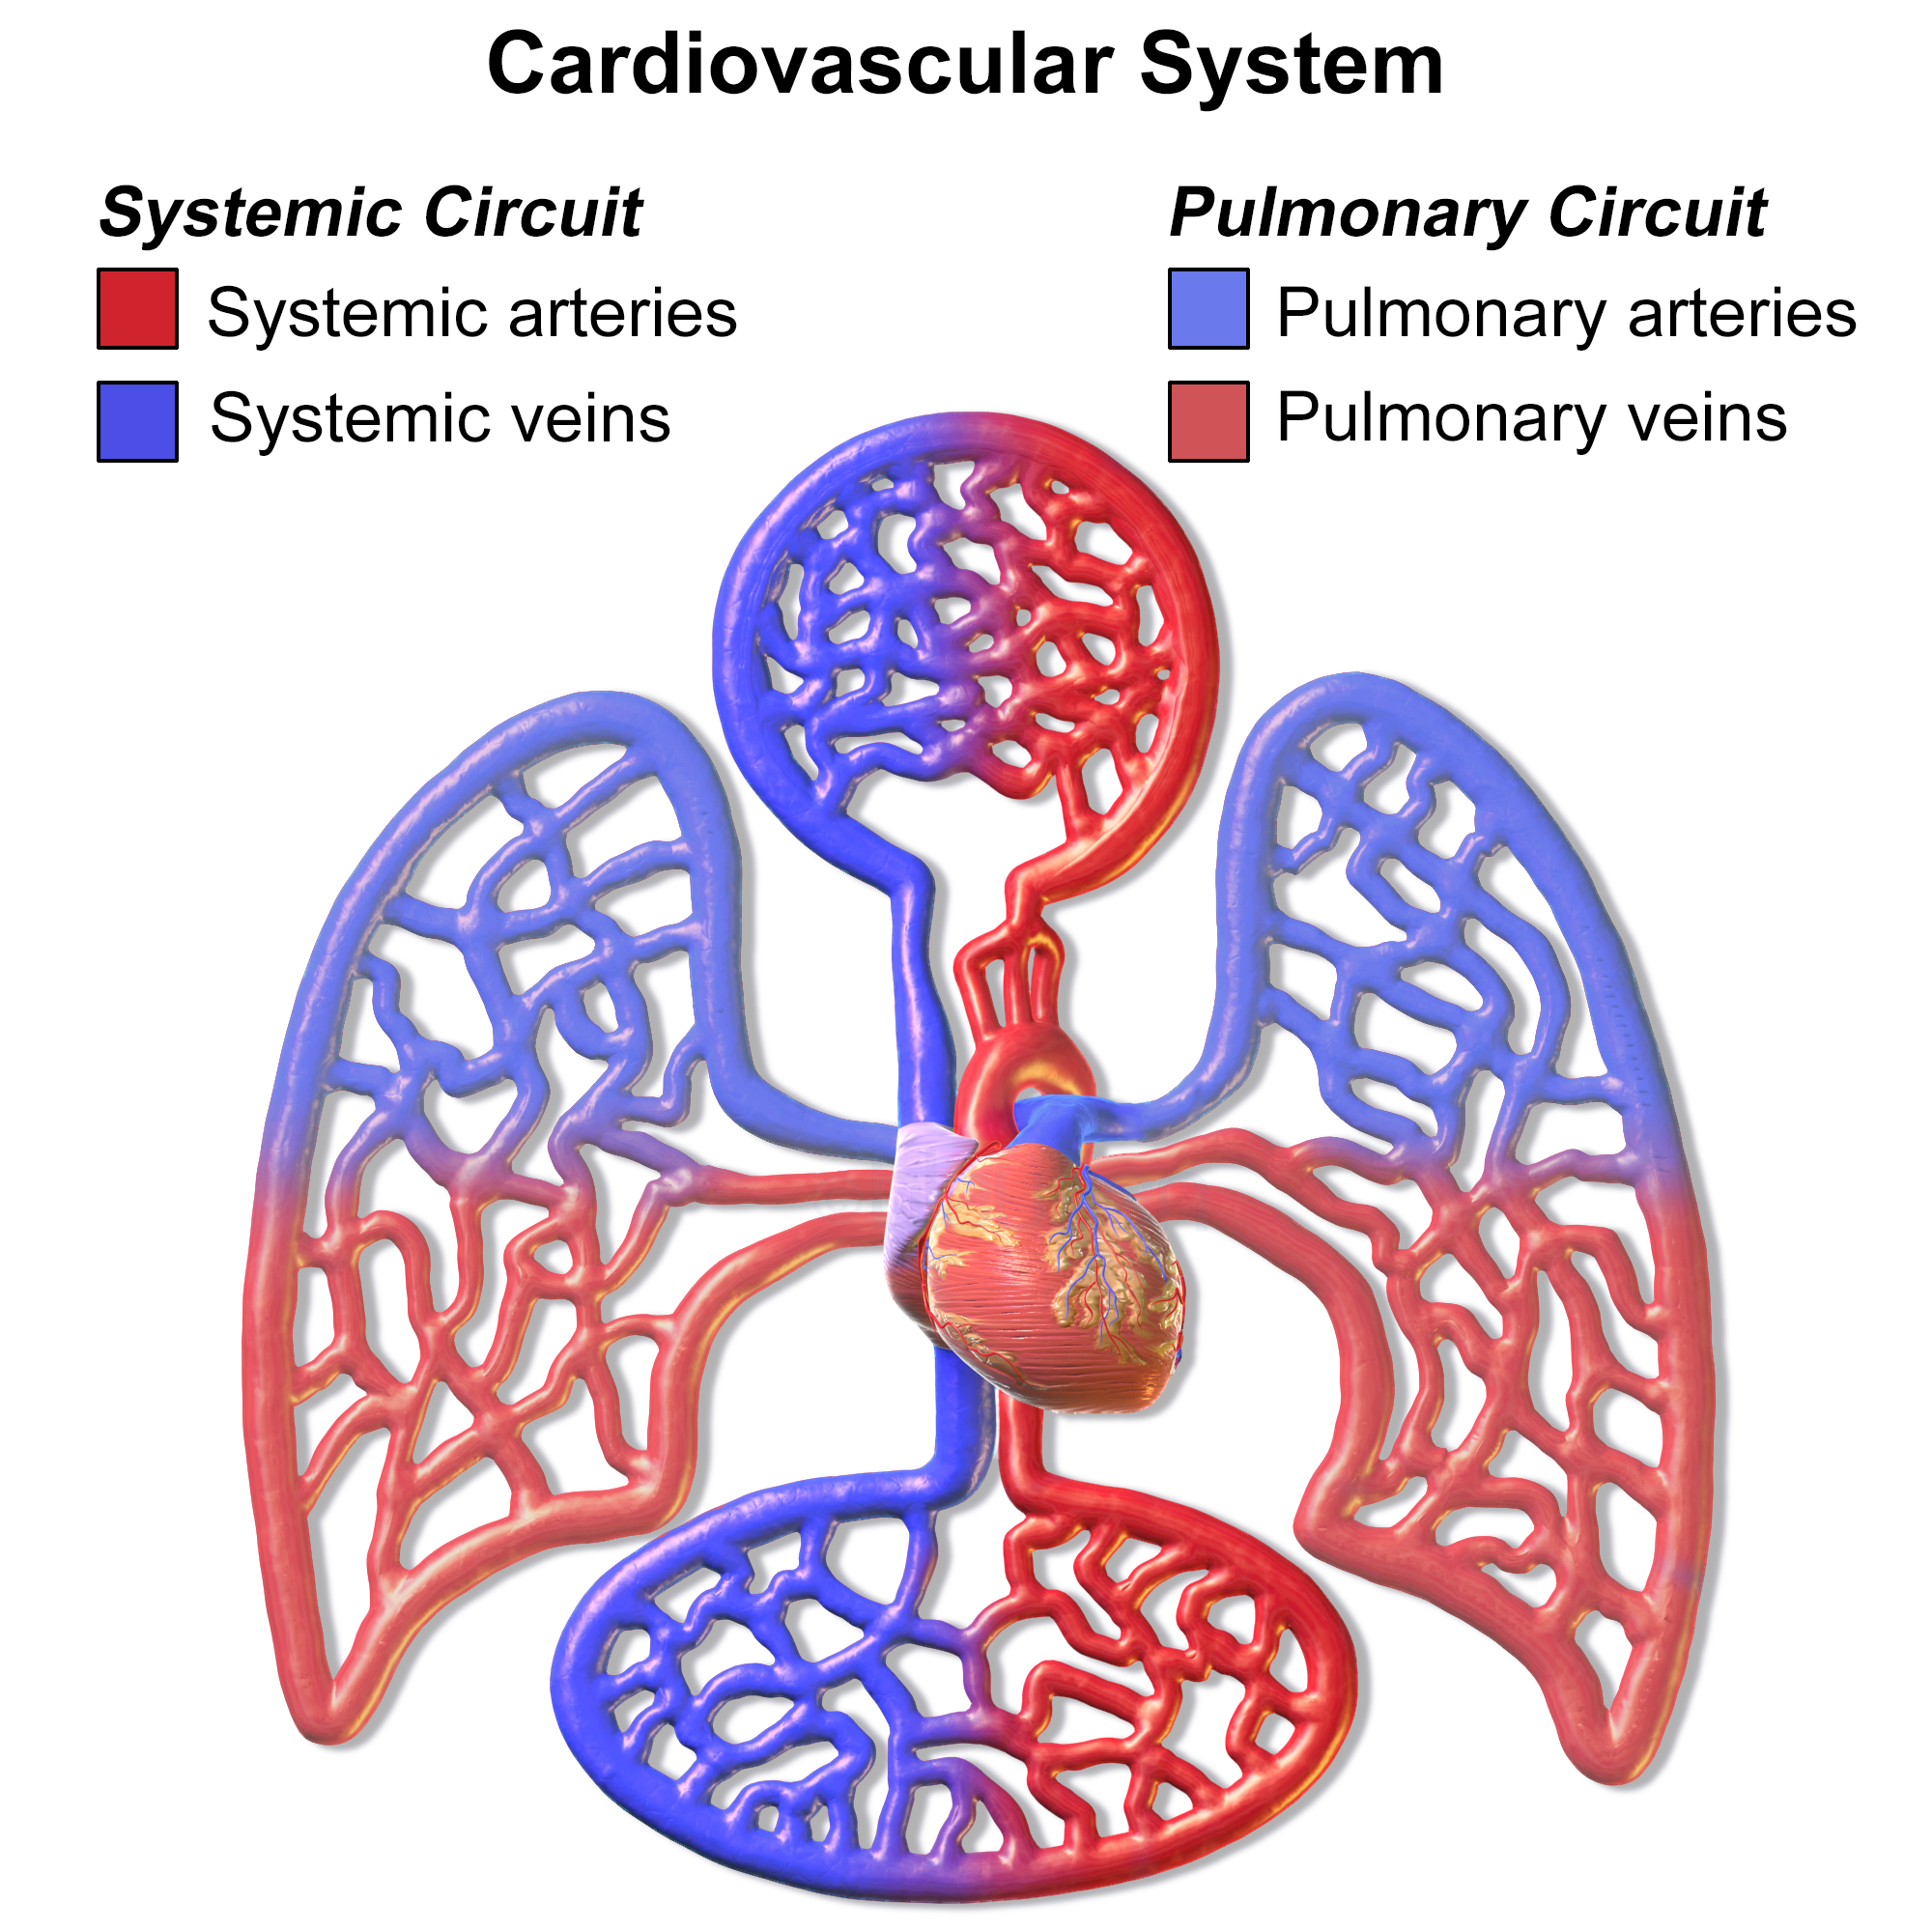 Systemic circulation and pulmonary circulation | DownHouseSoftware